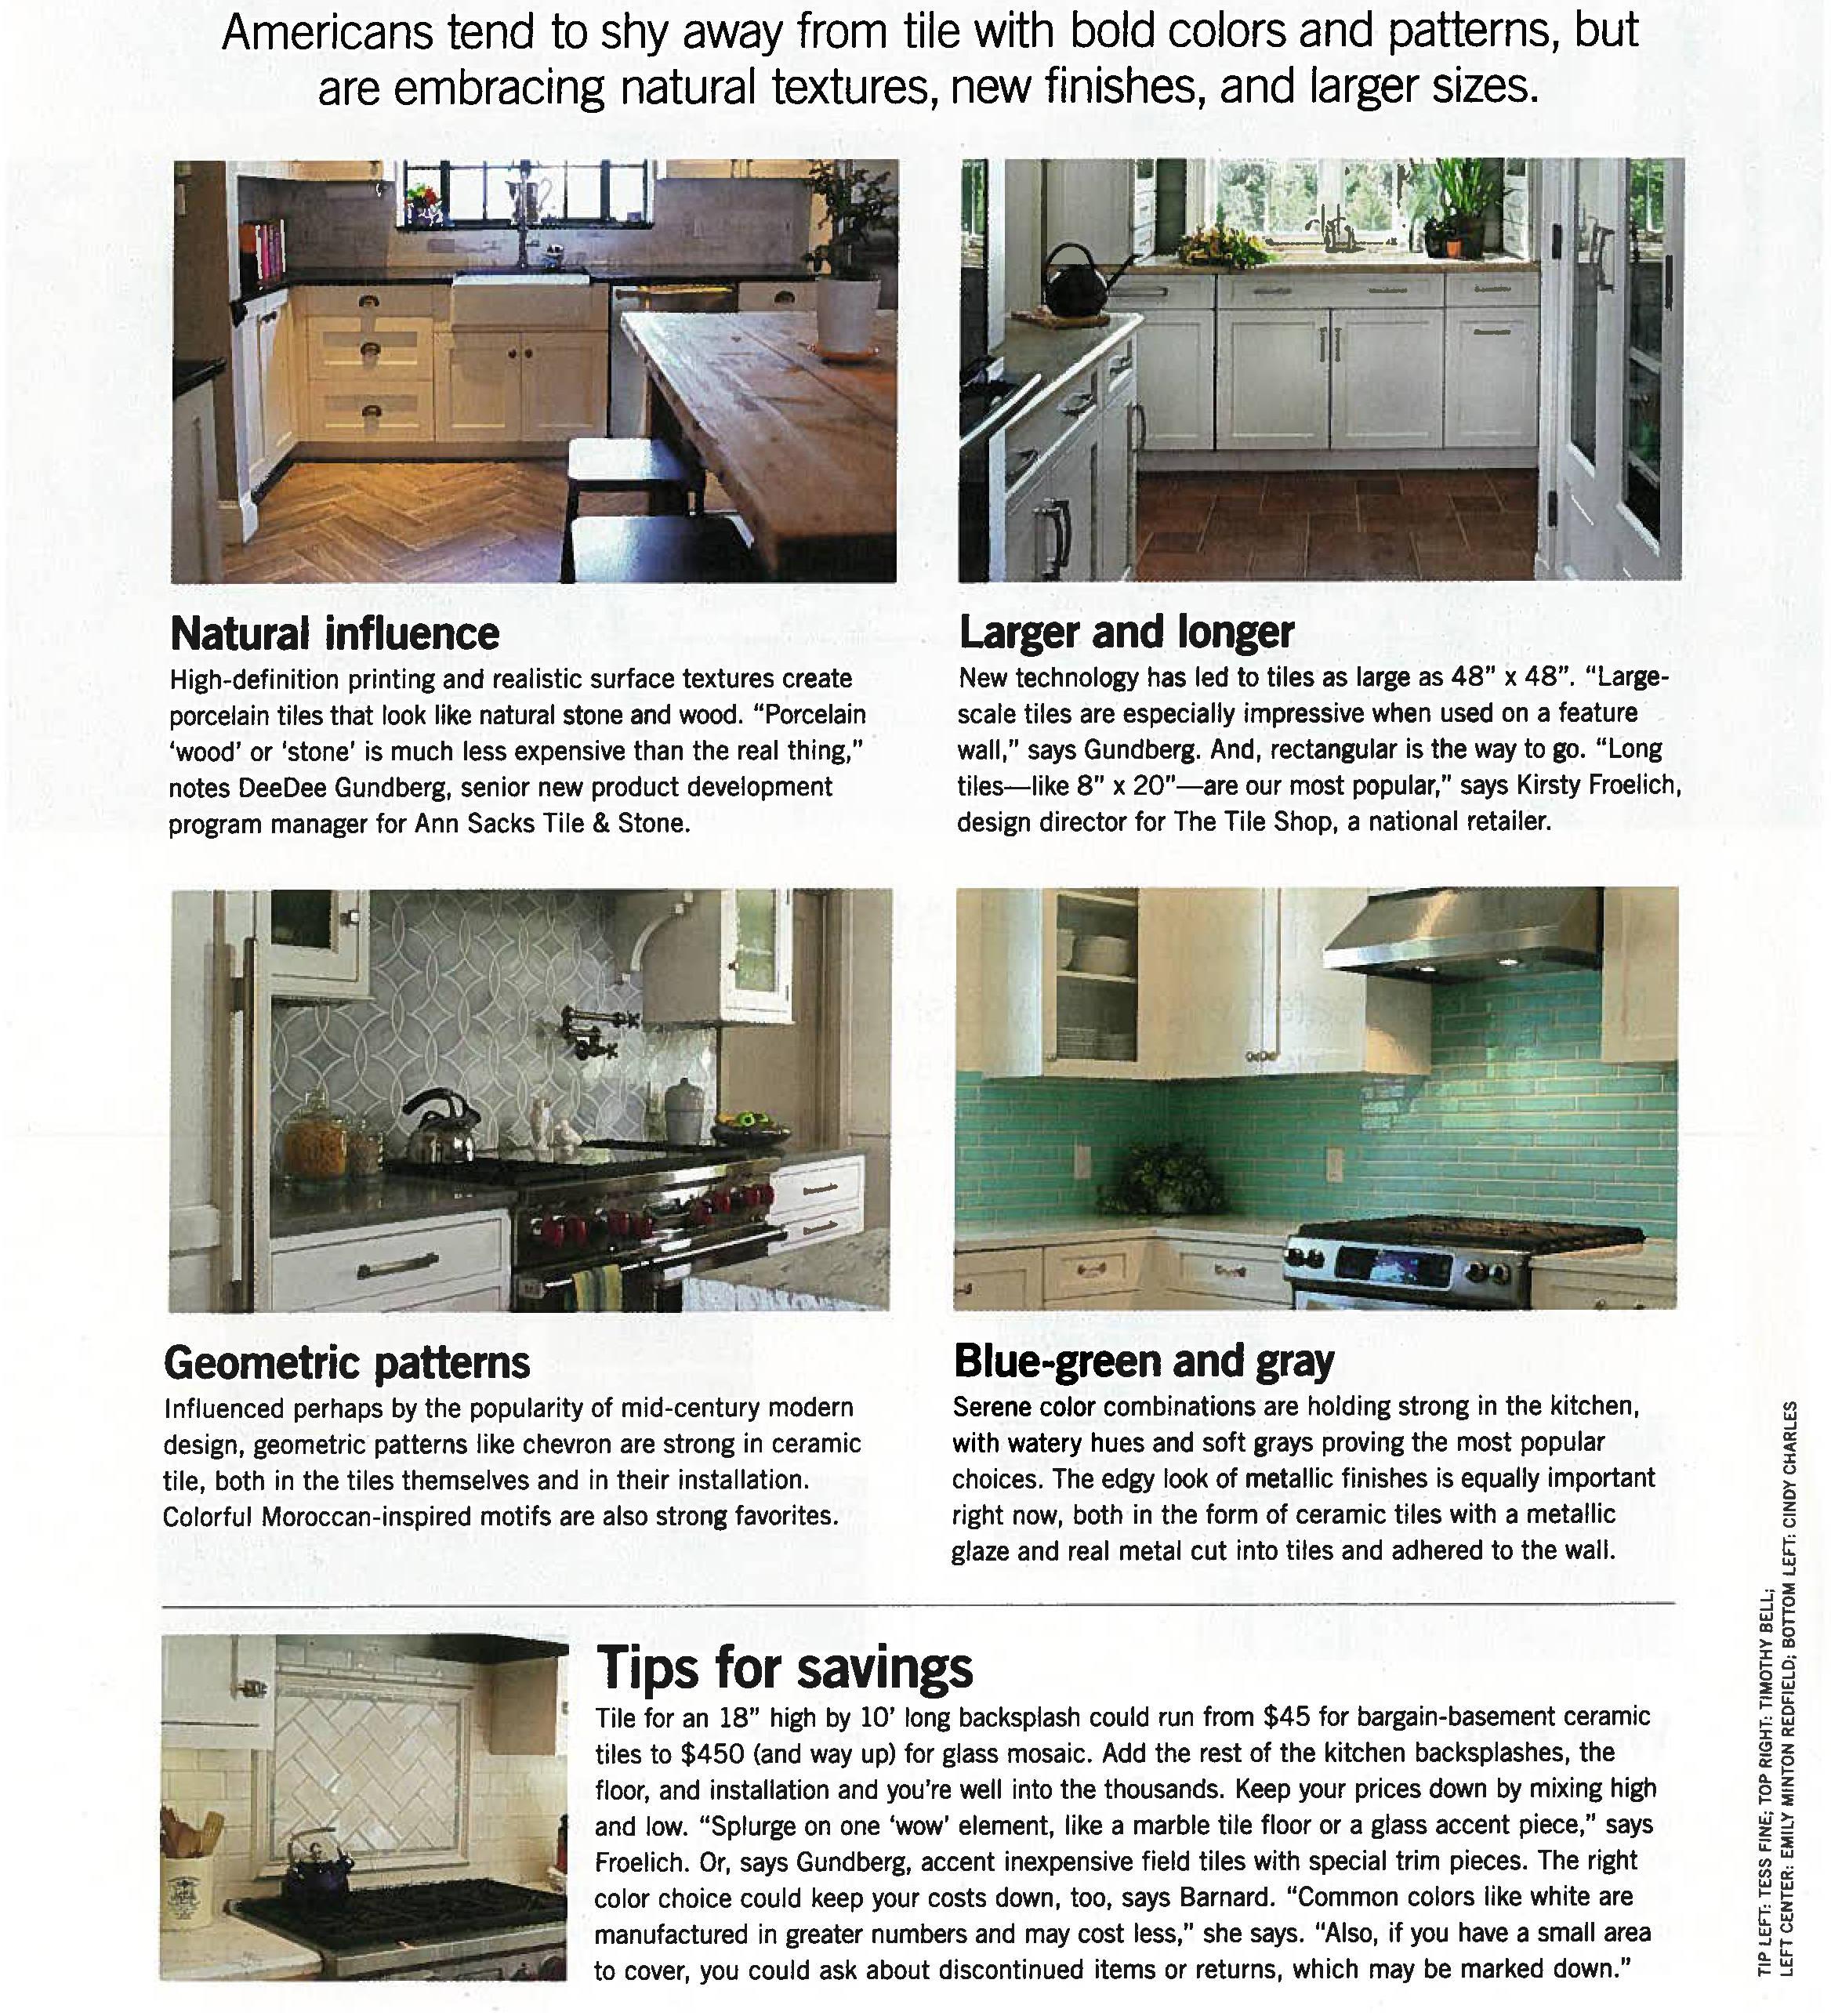 Consumer Reports, What's Hot, September 2014